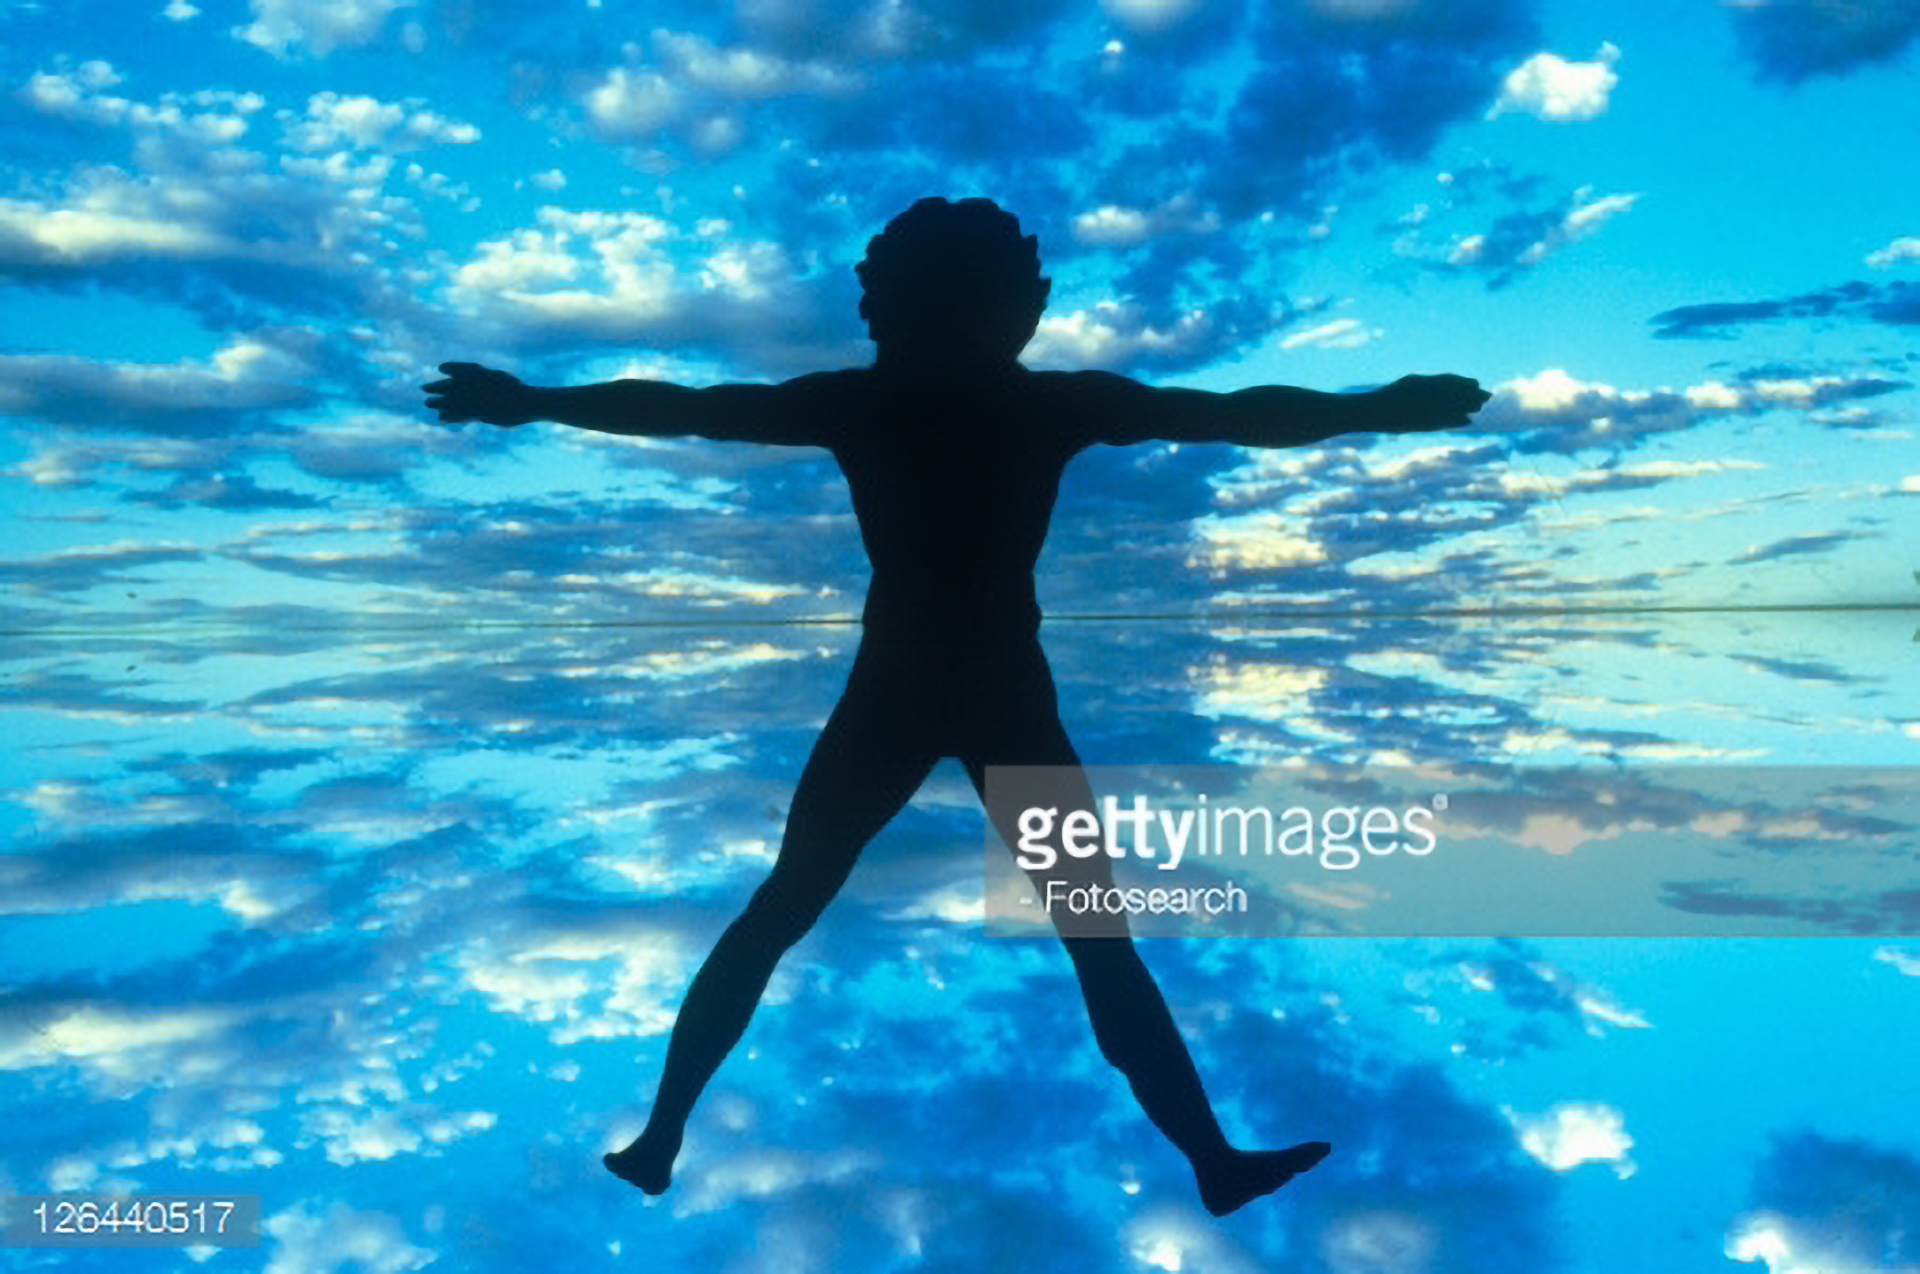 126440517-clouds-and-blue-sky-behind-silhouette-of-new-gettyimages.jpg